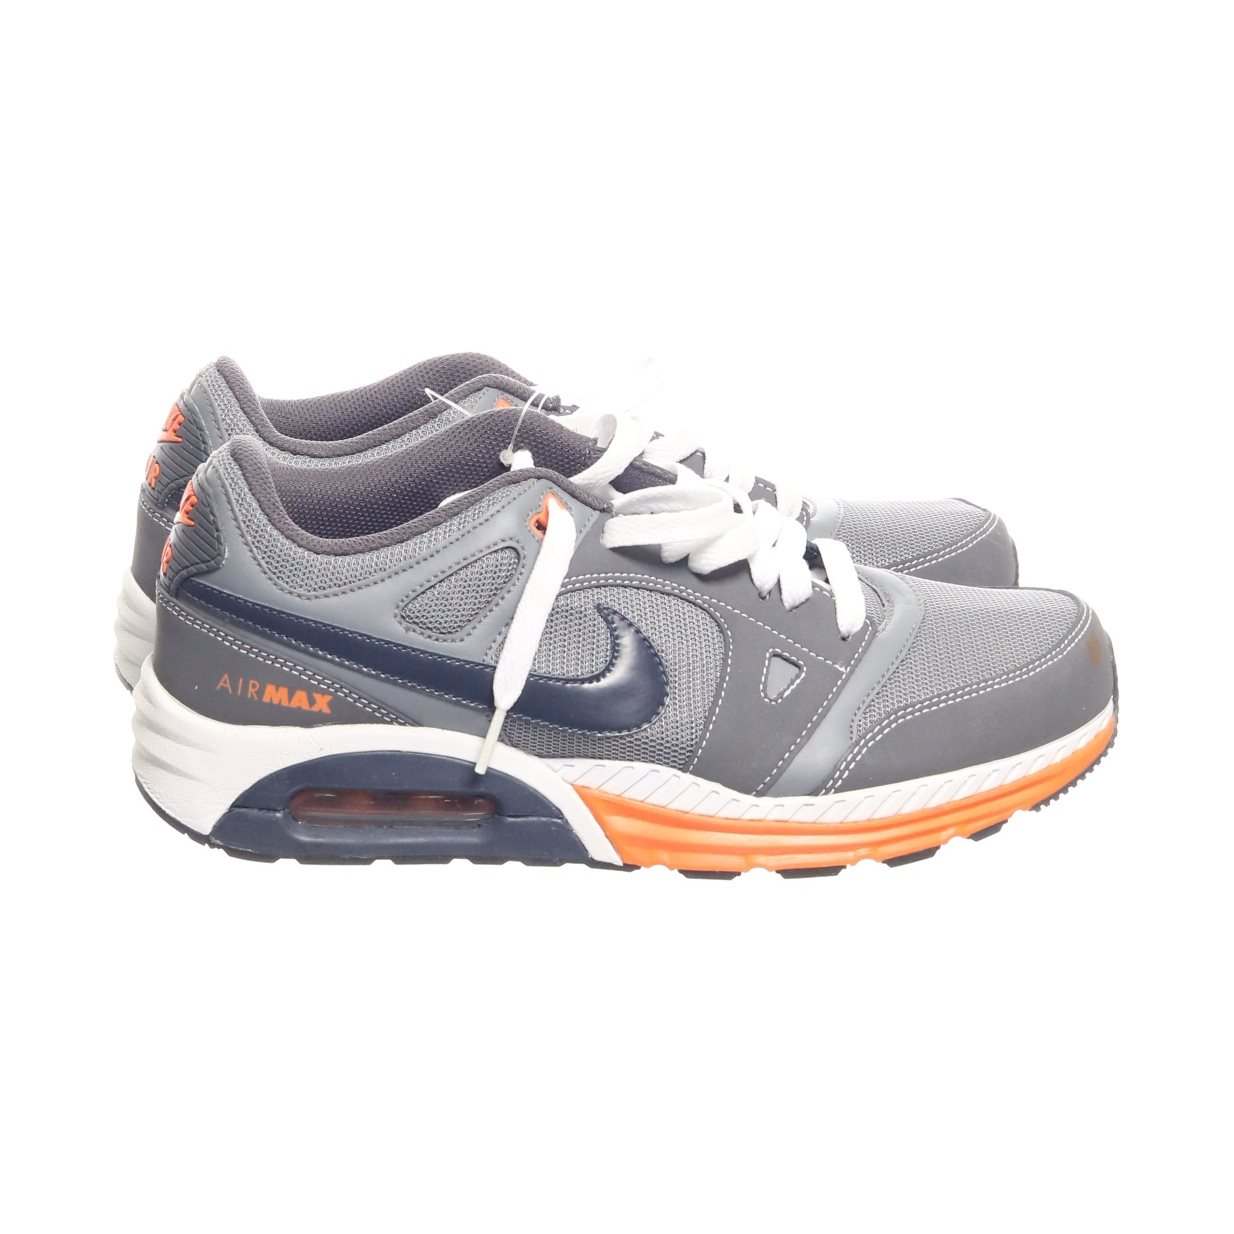 outlet store ace48 fd97f Nike, Sneakers, Strl  42,5, Nike Air Max, Grå